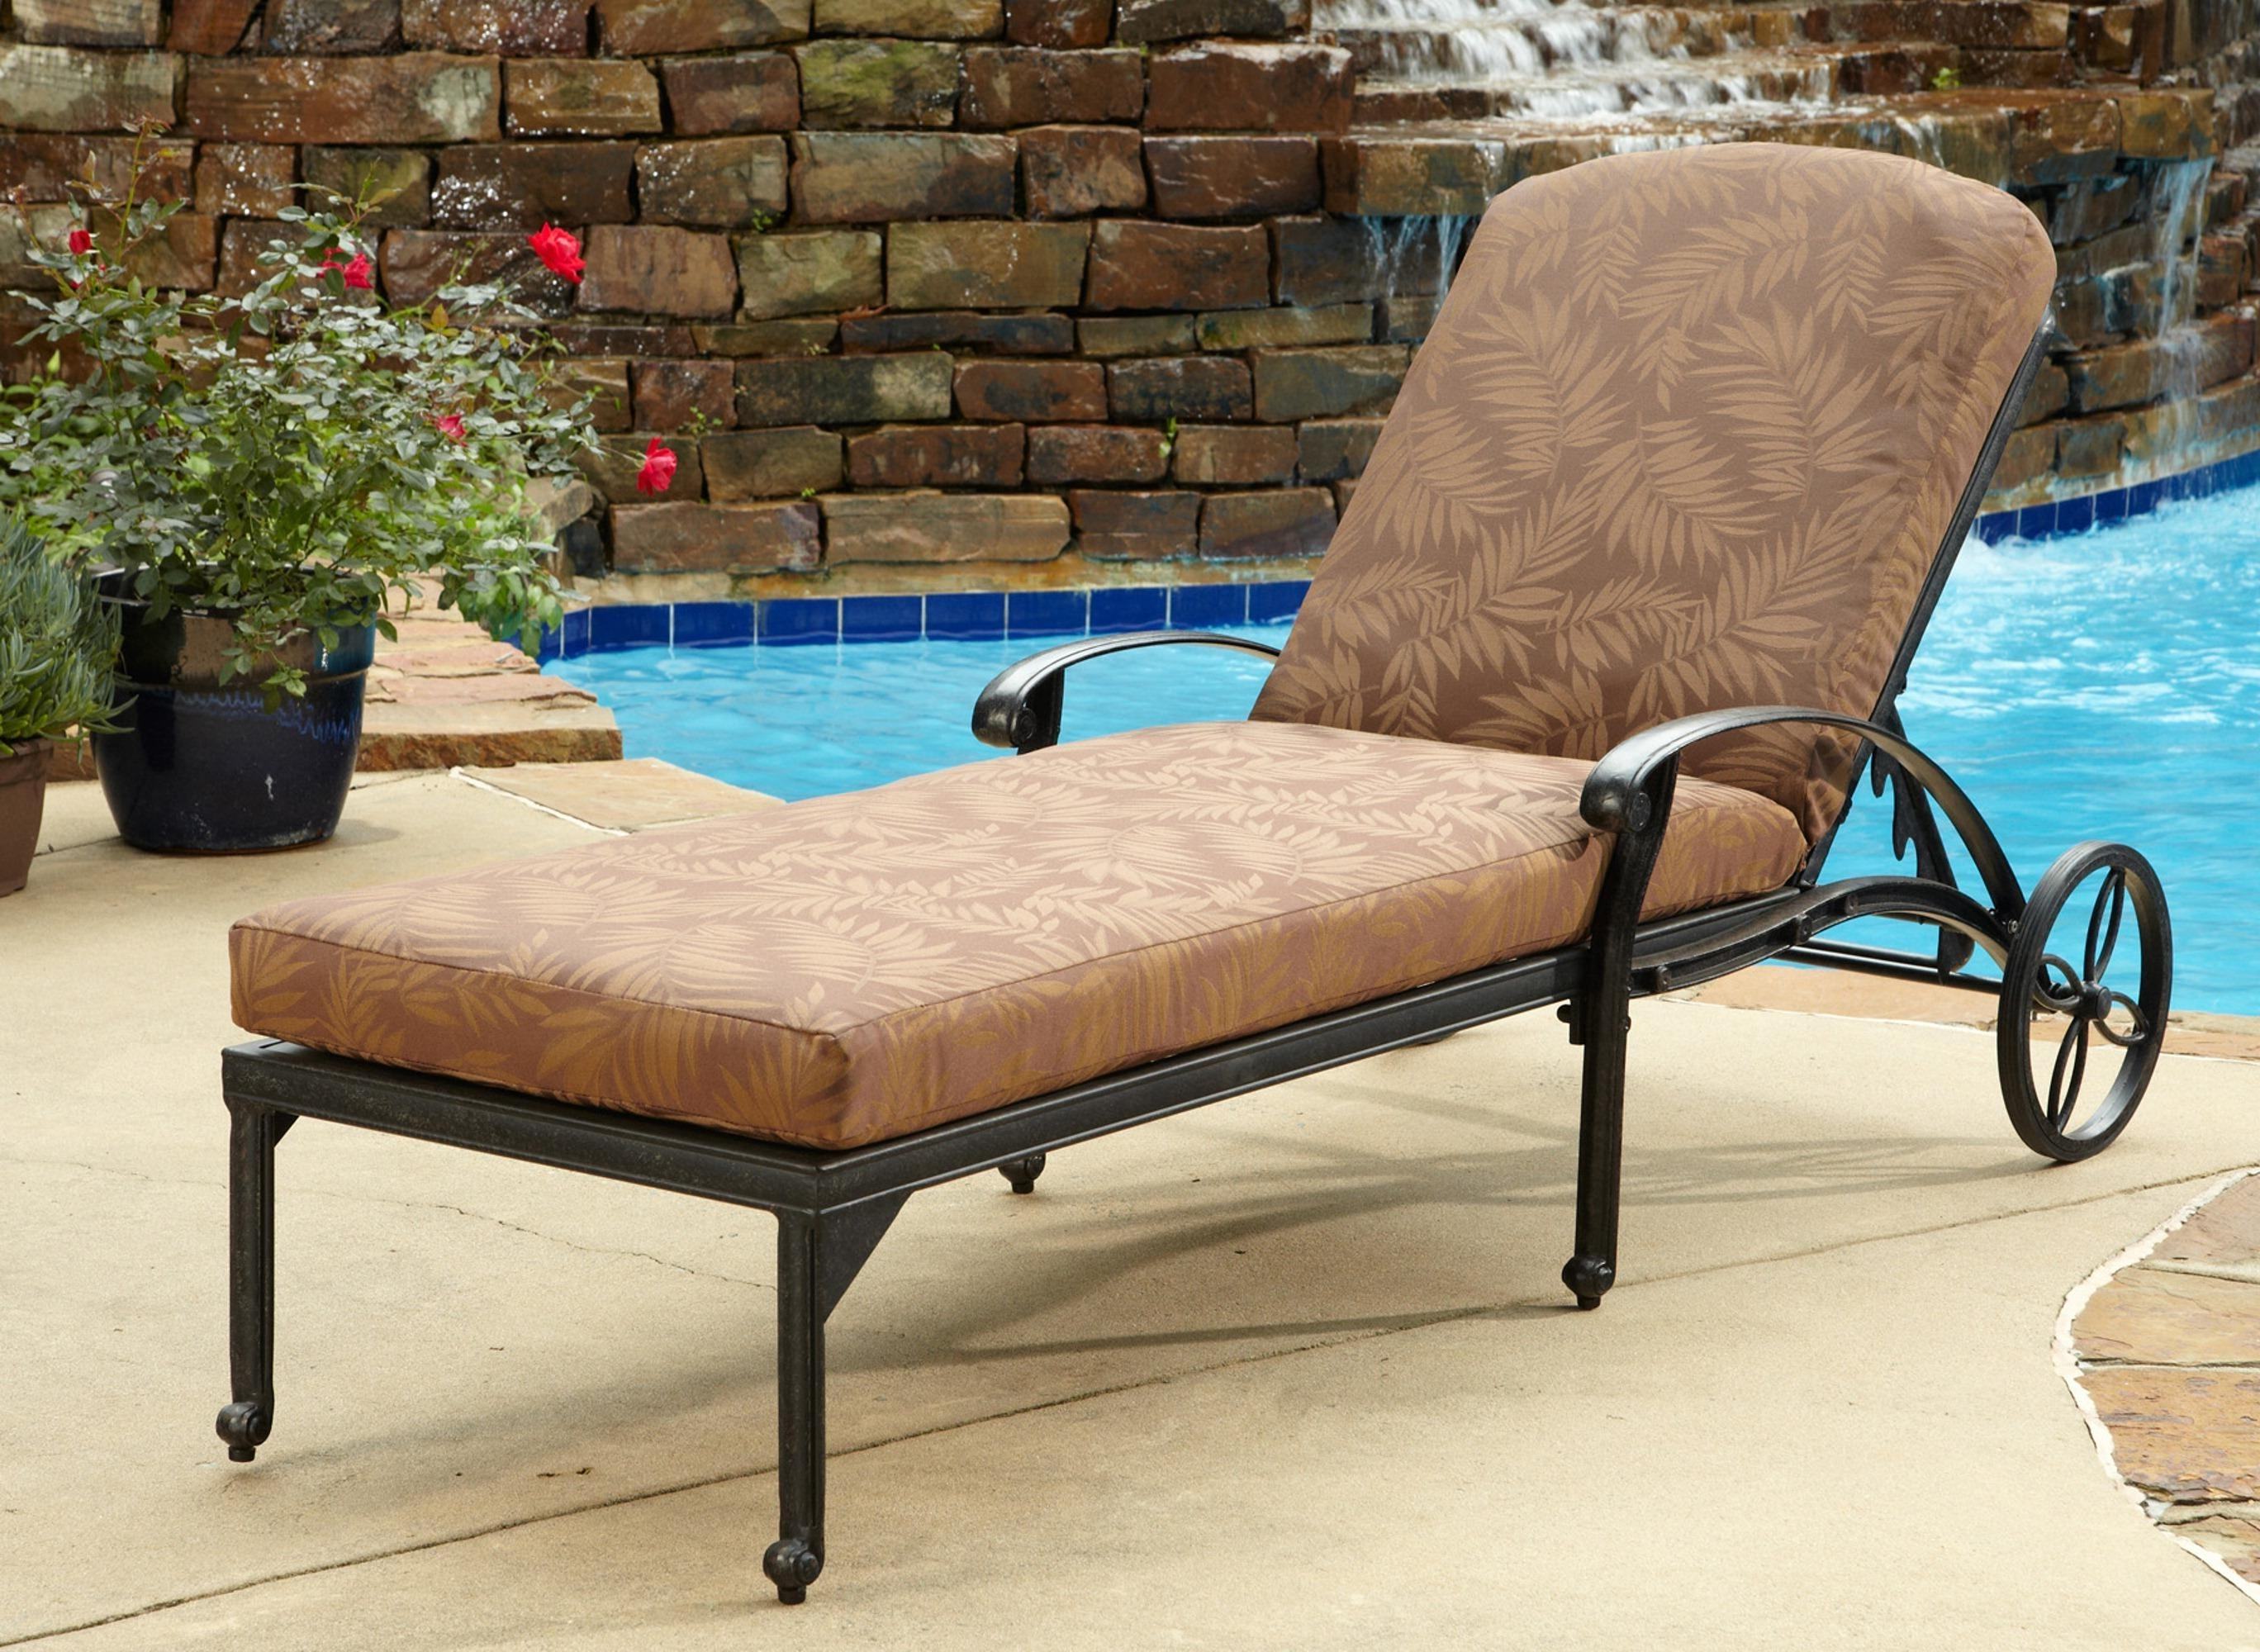 Convertible Chair : Outdoor Chaise Cushions Rattan Furniture Inside Favorite Cheap Outdoor Chaise Lounges (View 13 of 15)